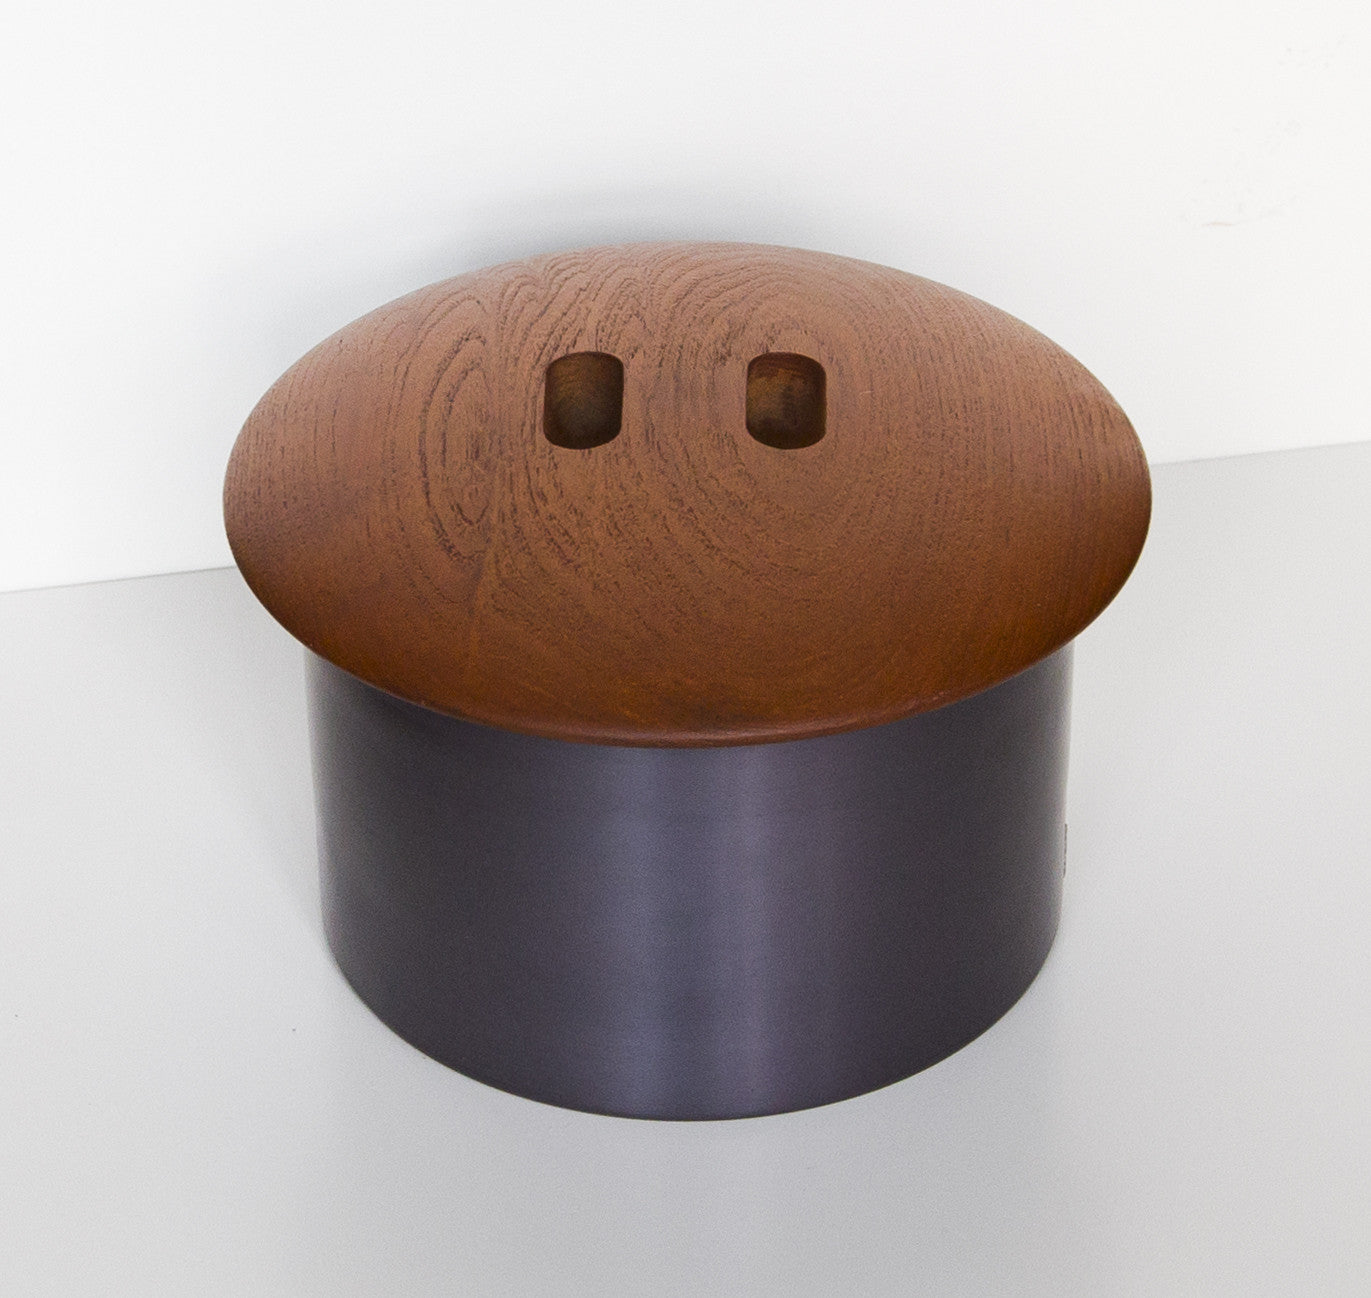 Finn Juhl Teak Ice Bucket, 1958 - The Exchange Int